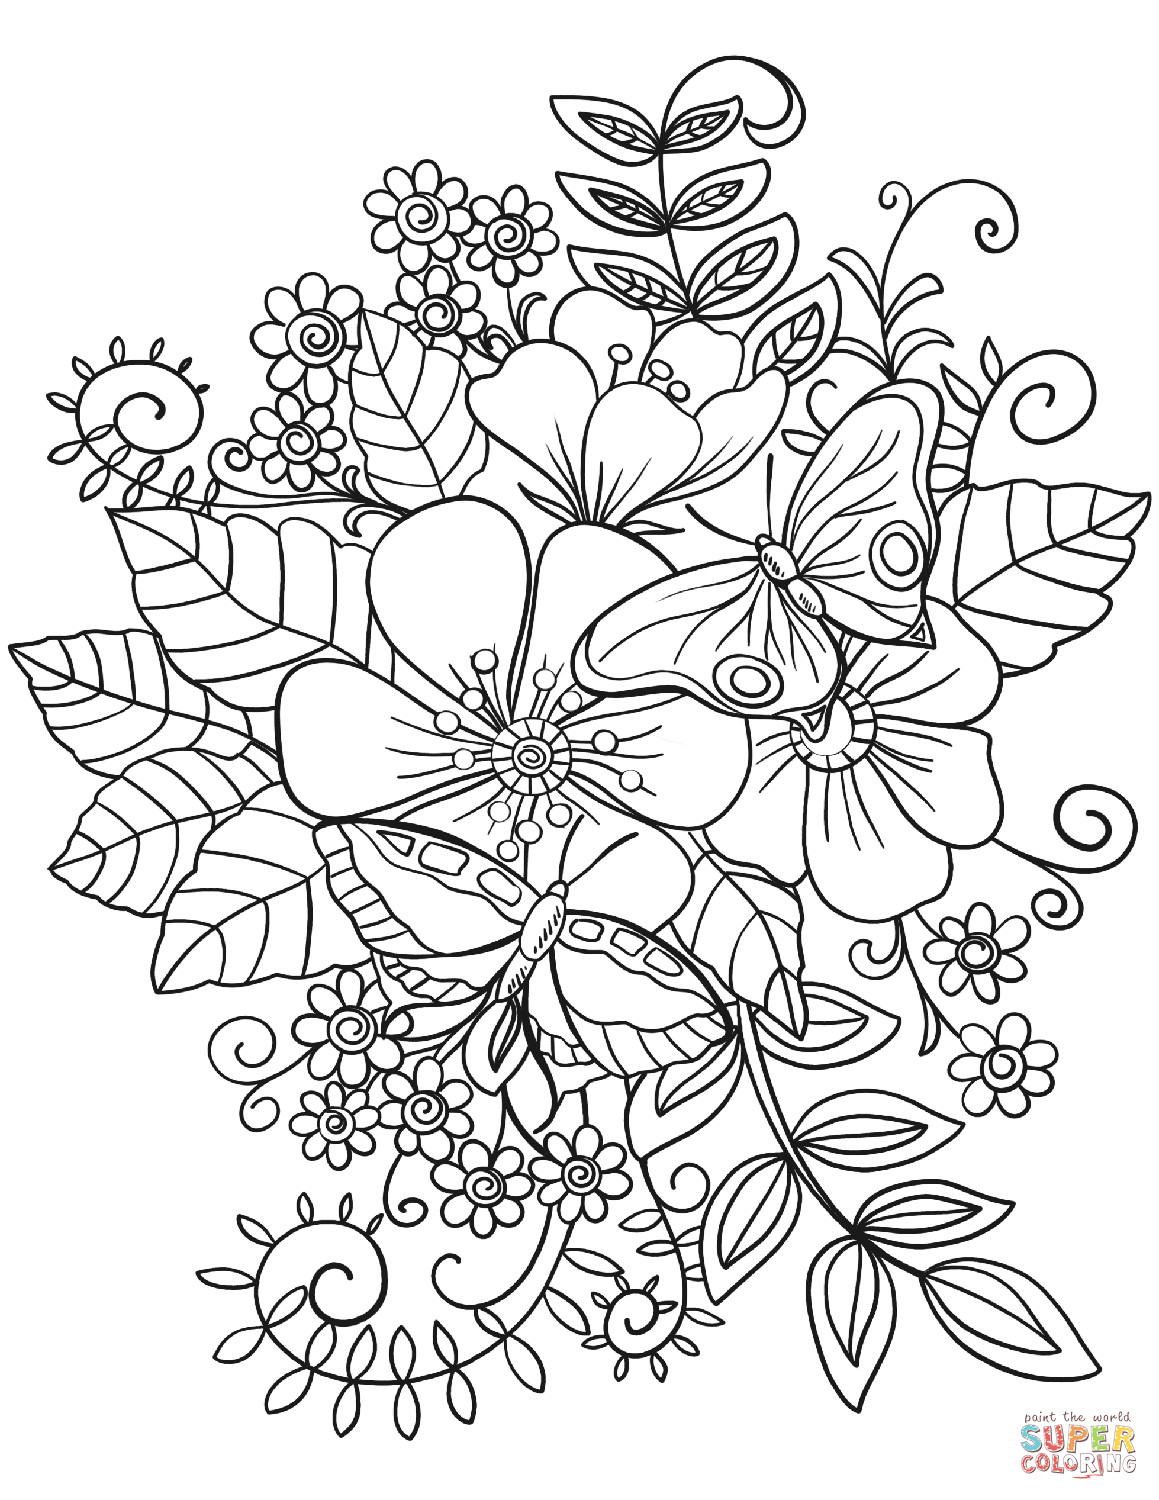 Best ideas about Free Printable Of Roses Coloring Pages For Girls Pinterest. . Save or Pin Butterflies on Flowers coloring page Now.